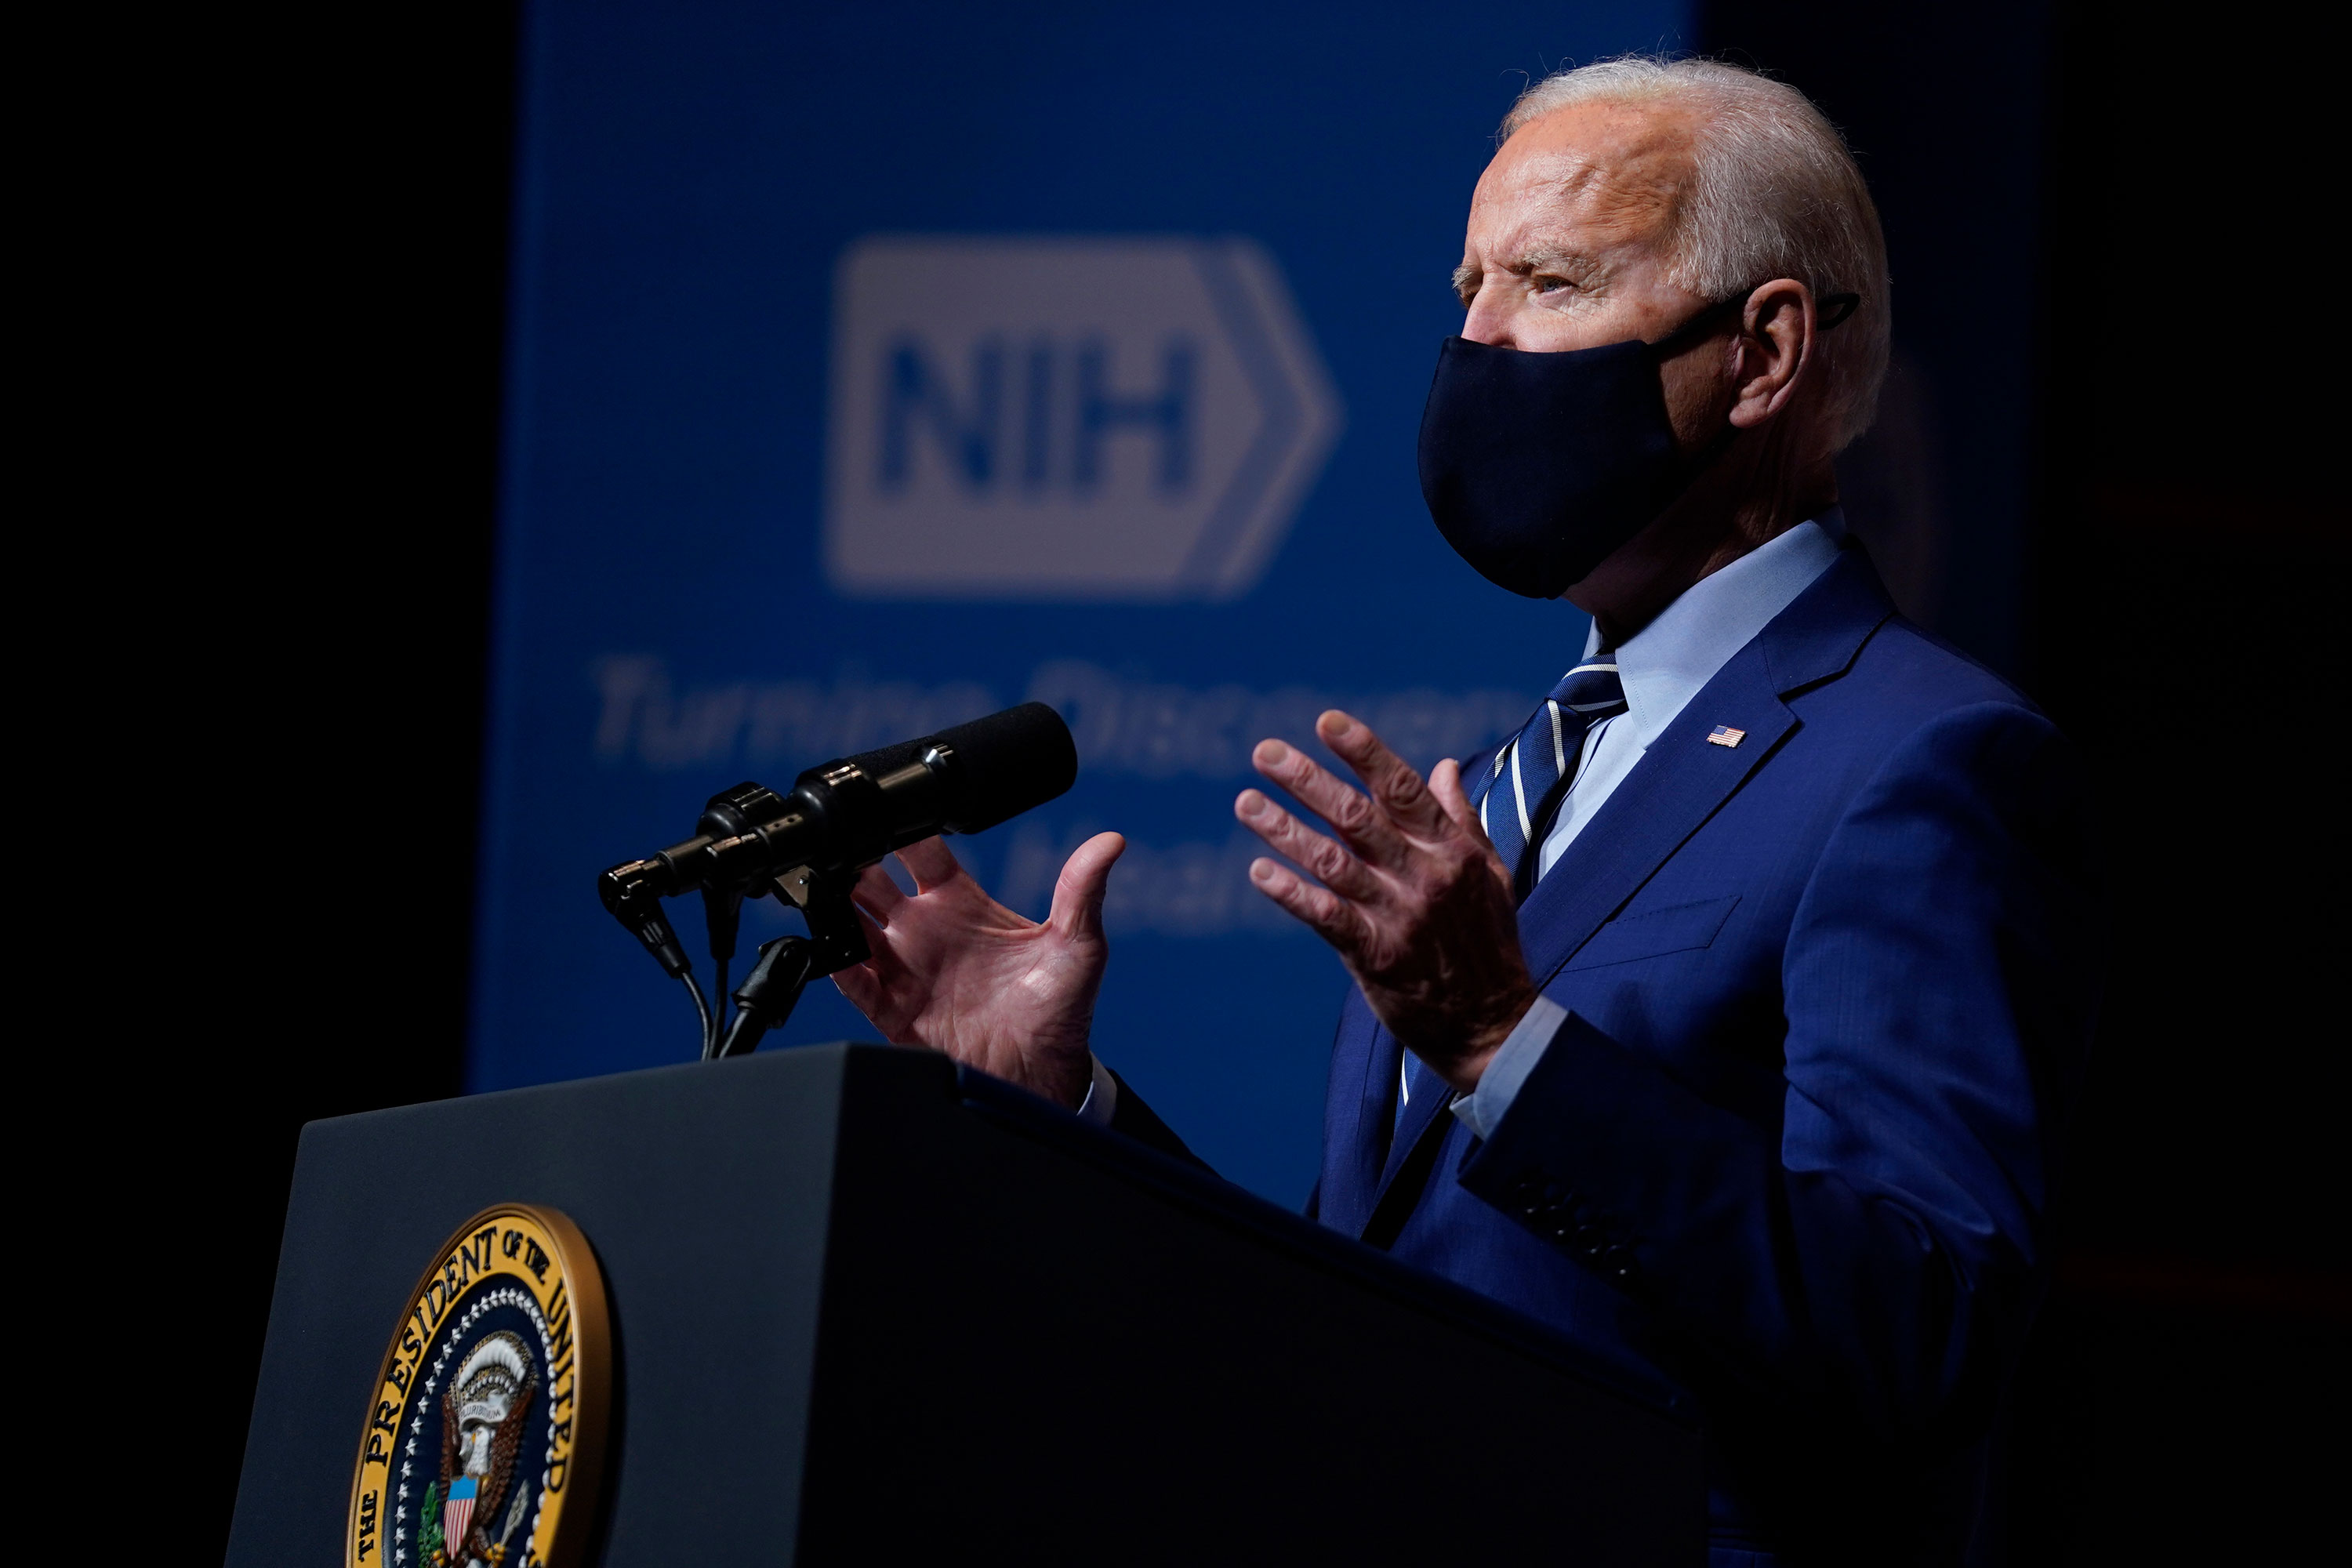 President Joe Biden speaks at the National Institutes of Health in Bethesda, Maryland, on February 11.